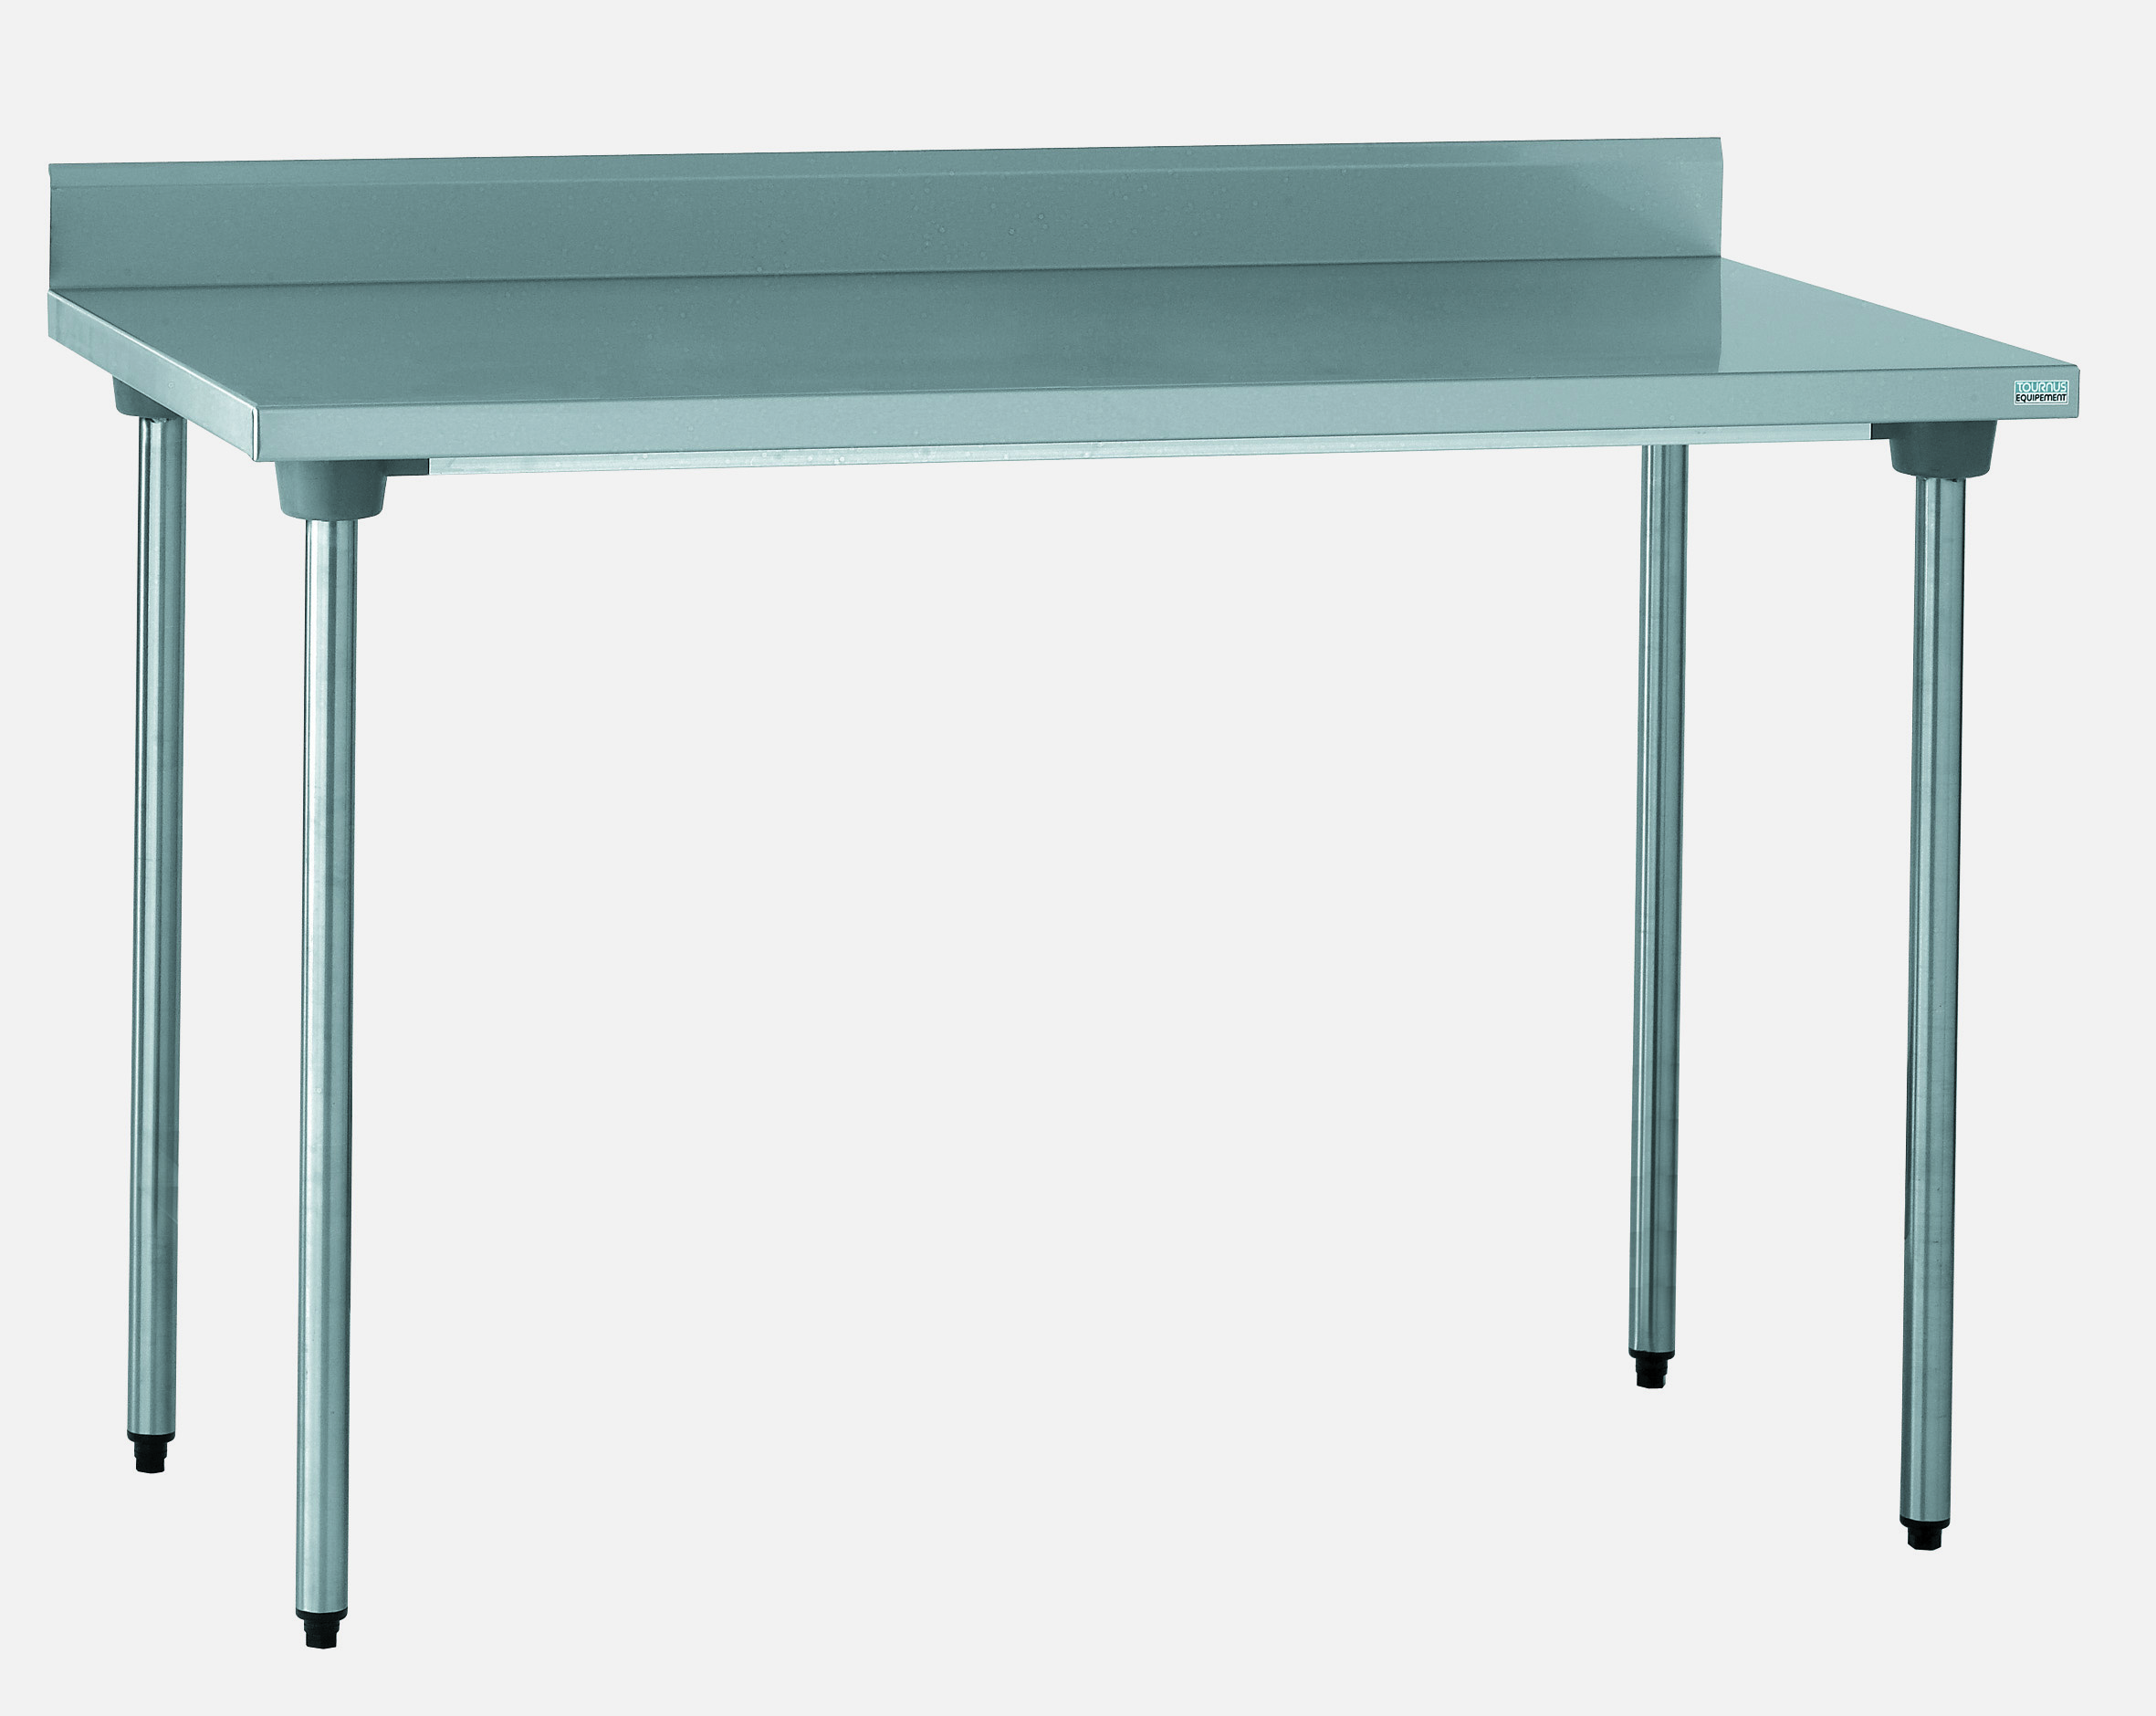 TABLE CHR ADOSSEE 700X1800